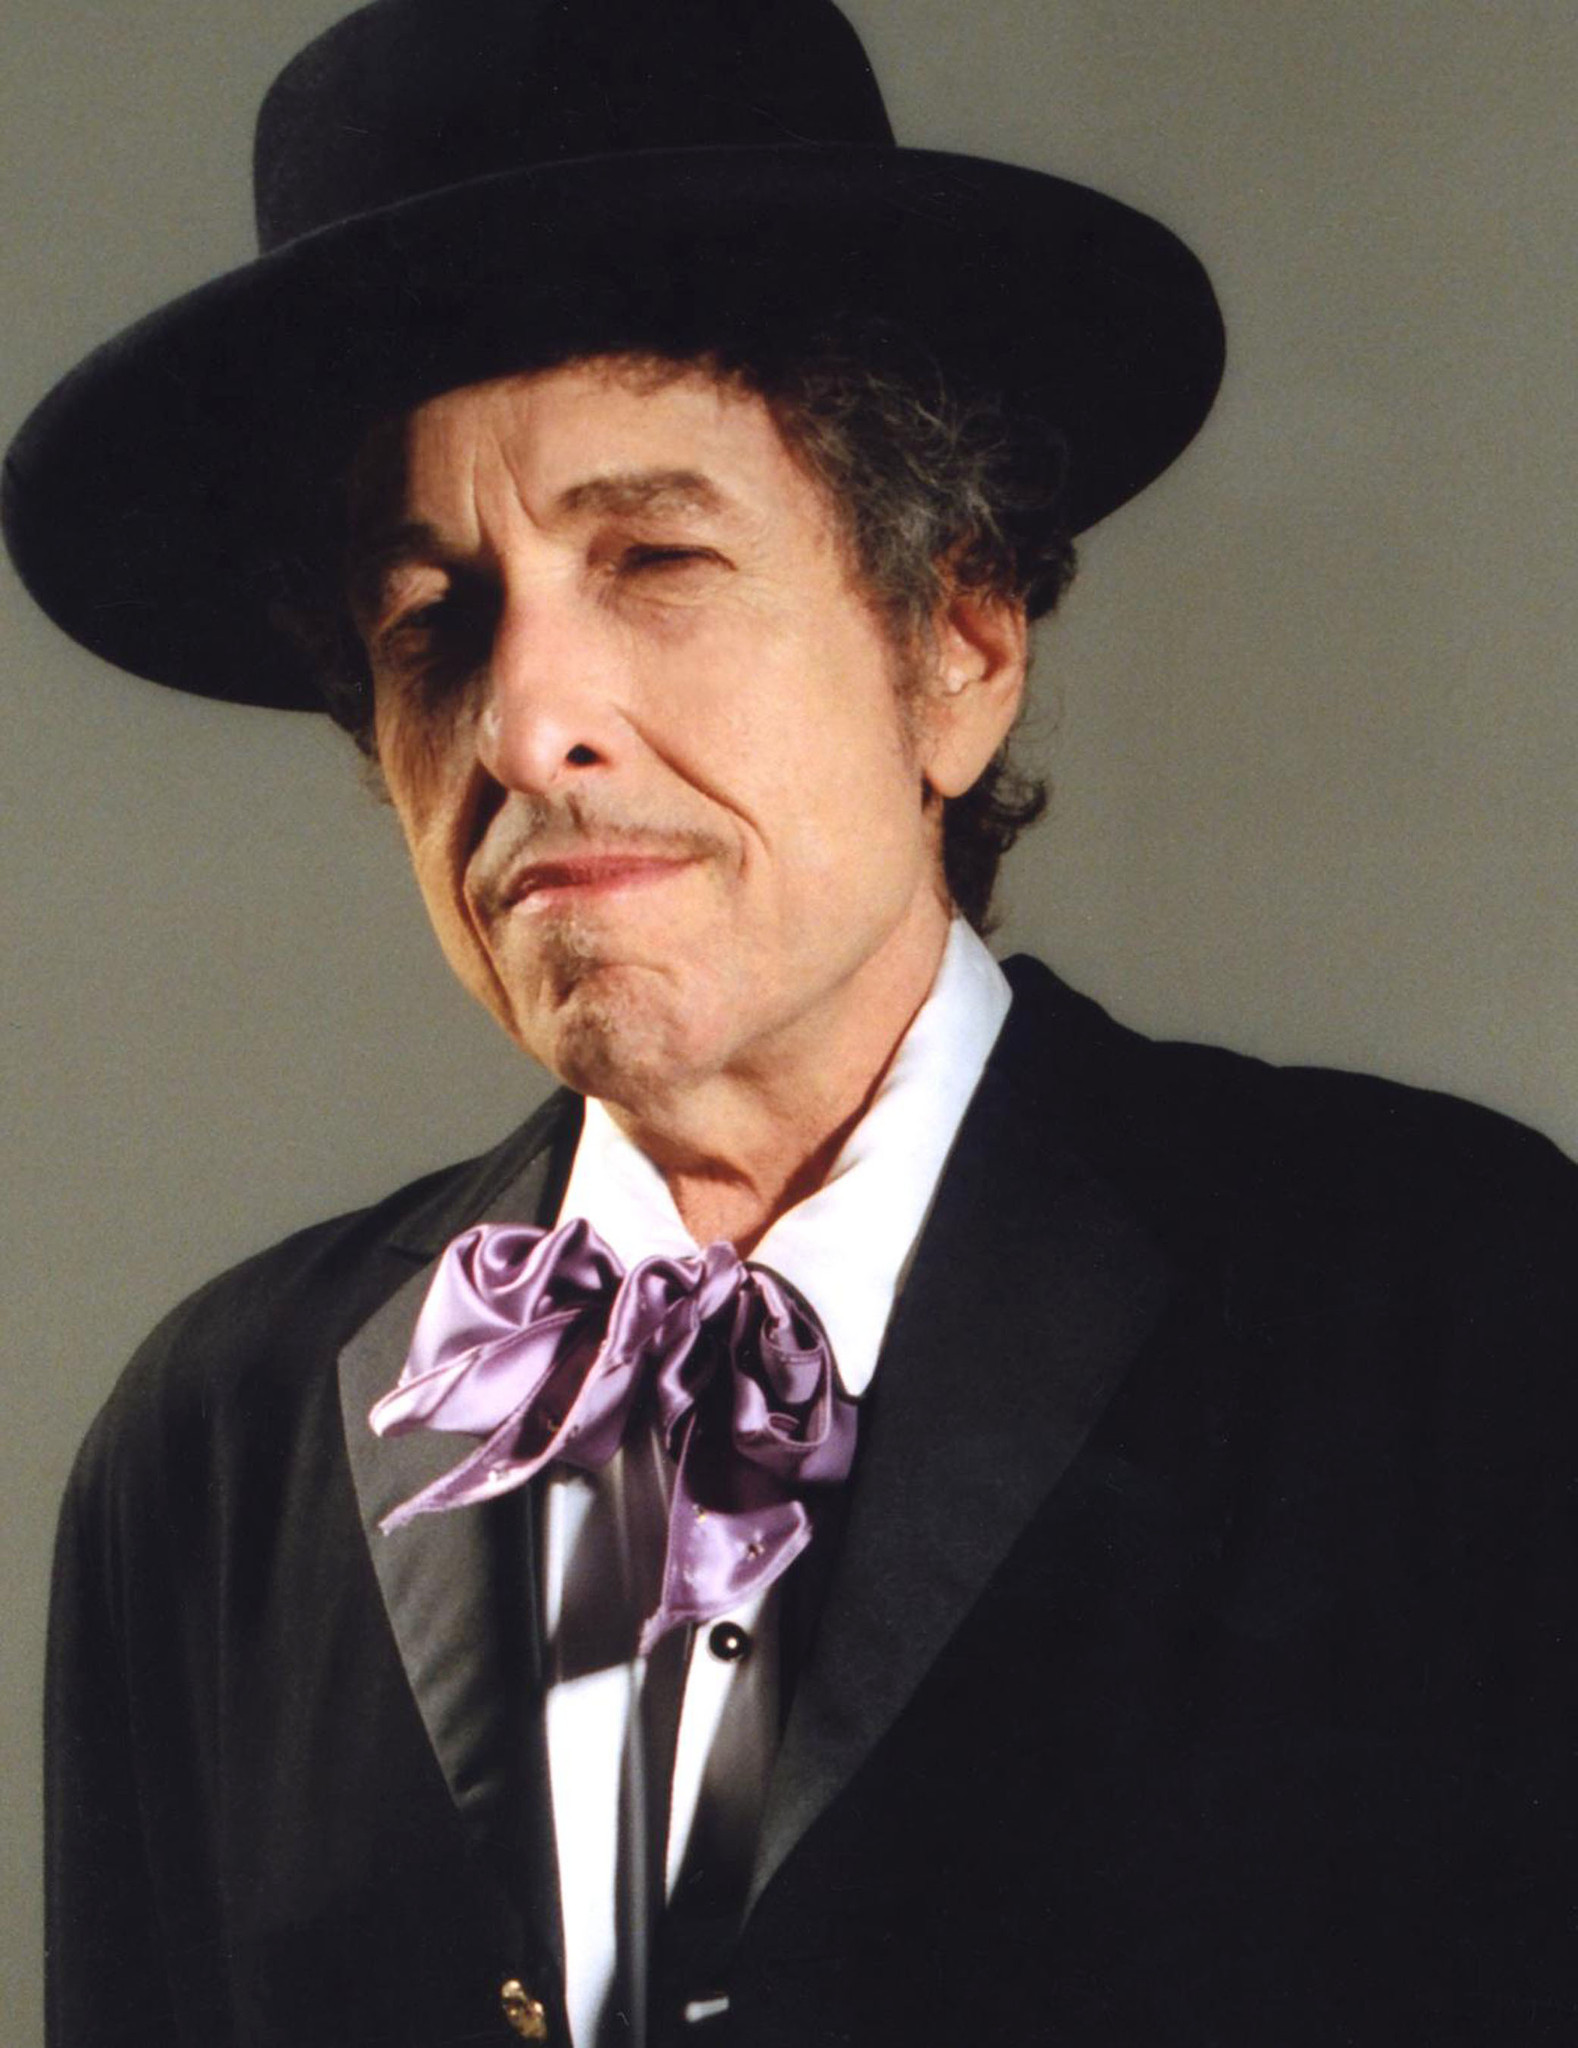 os-bob-dylan-coming-to-orlando-dr-phillips-center-for-performing-arts-20150212